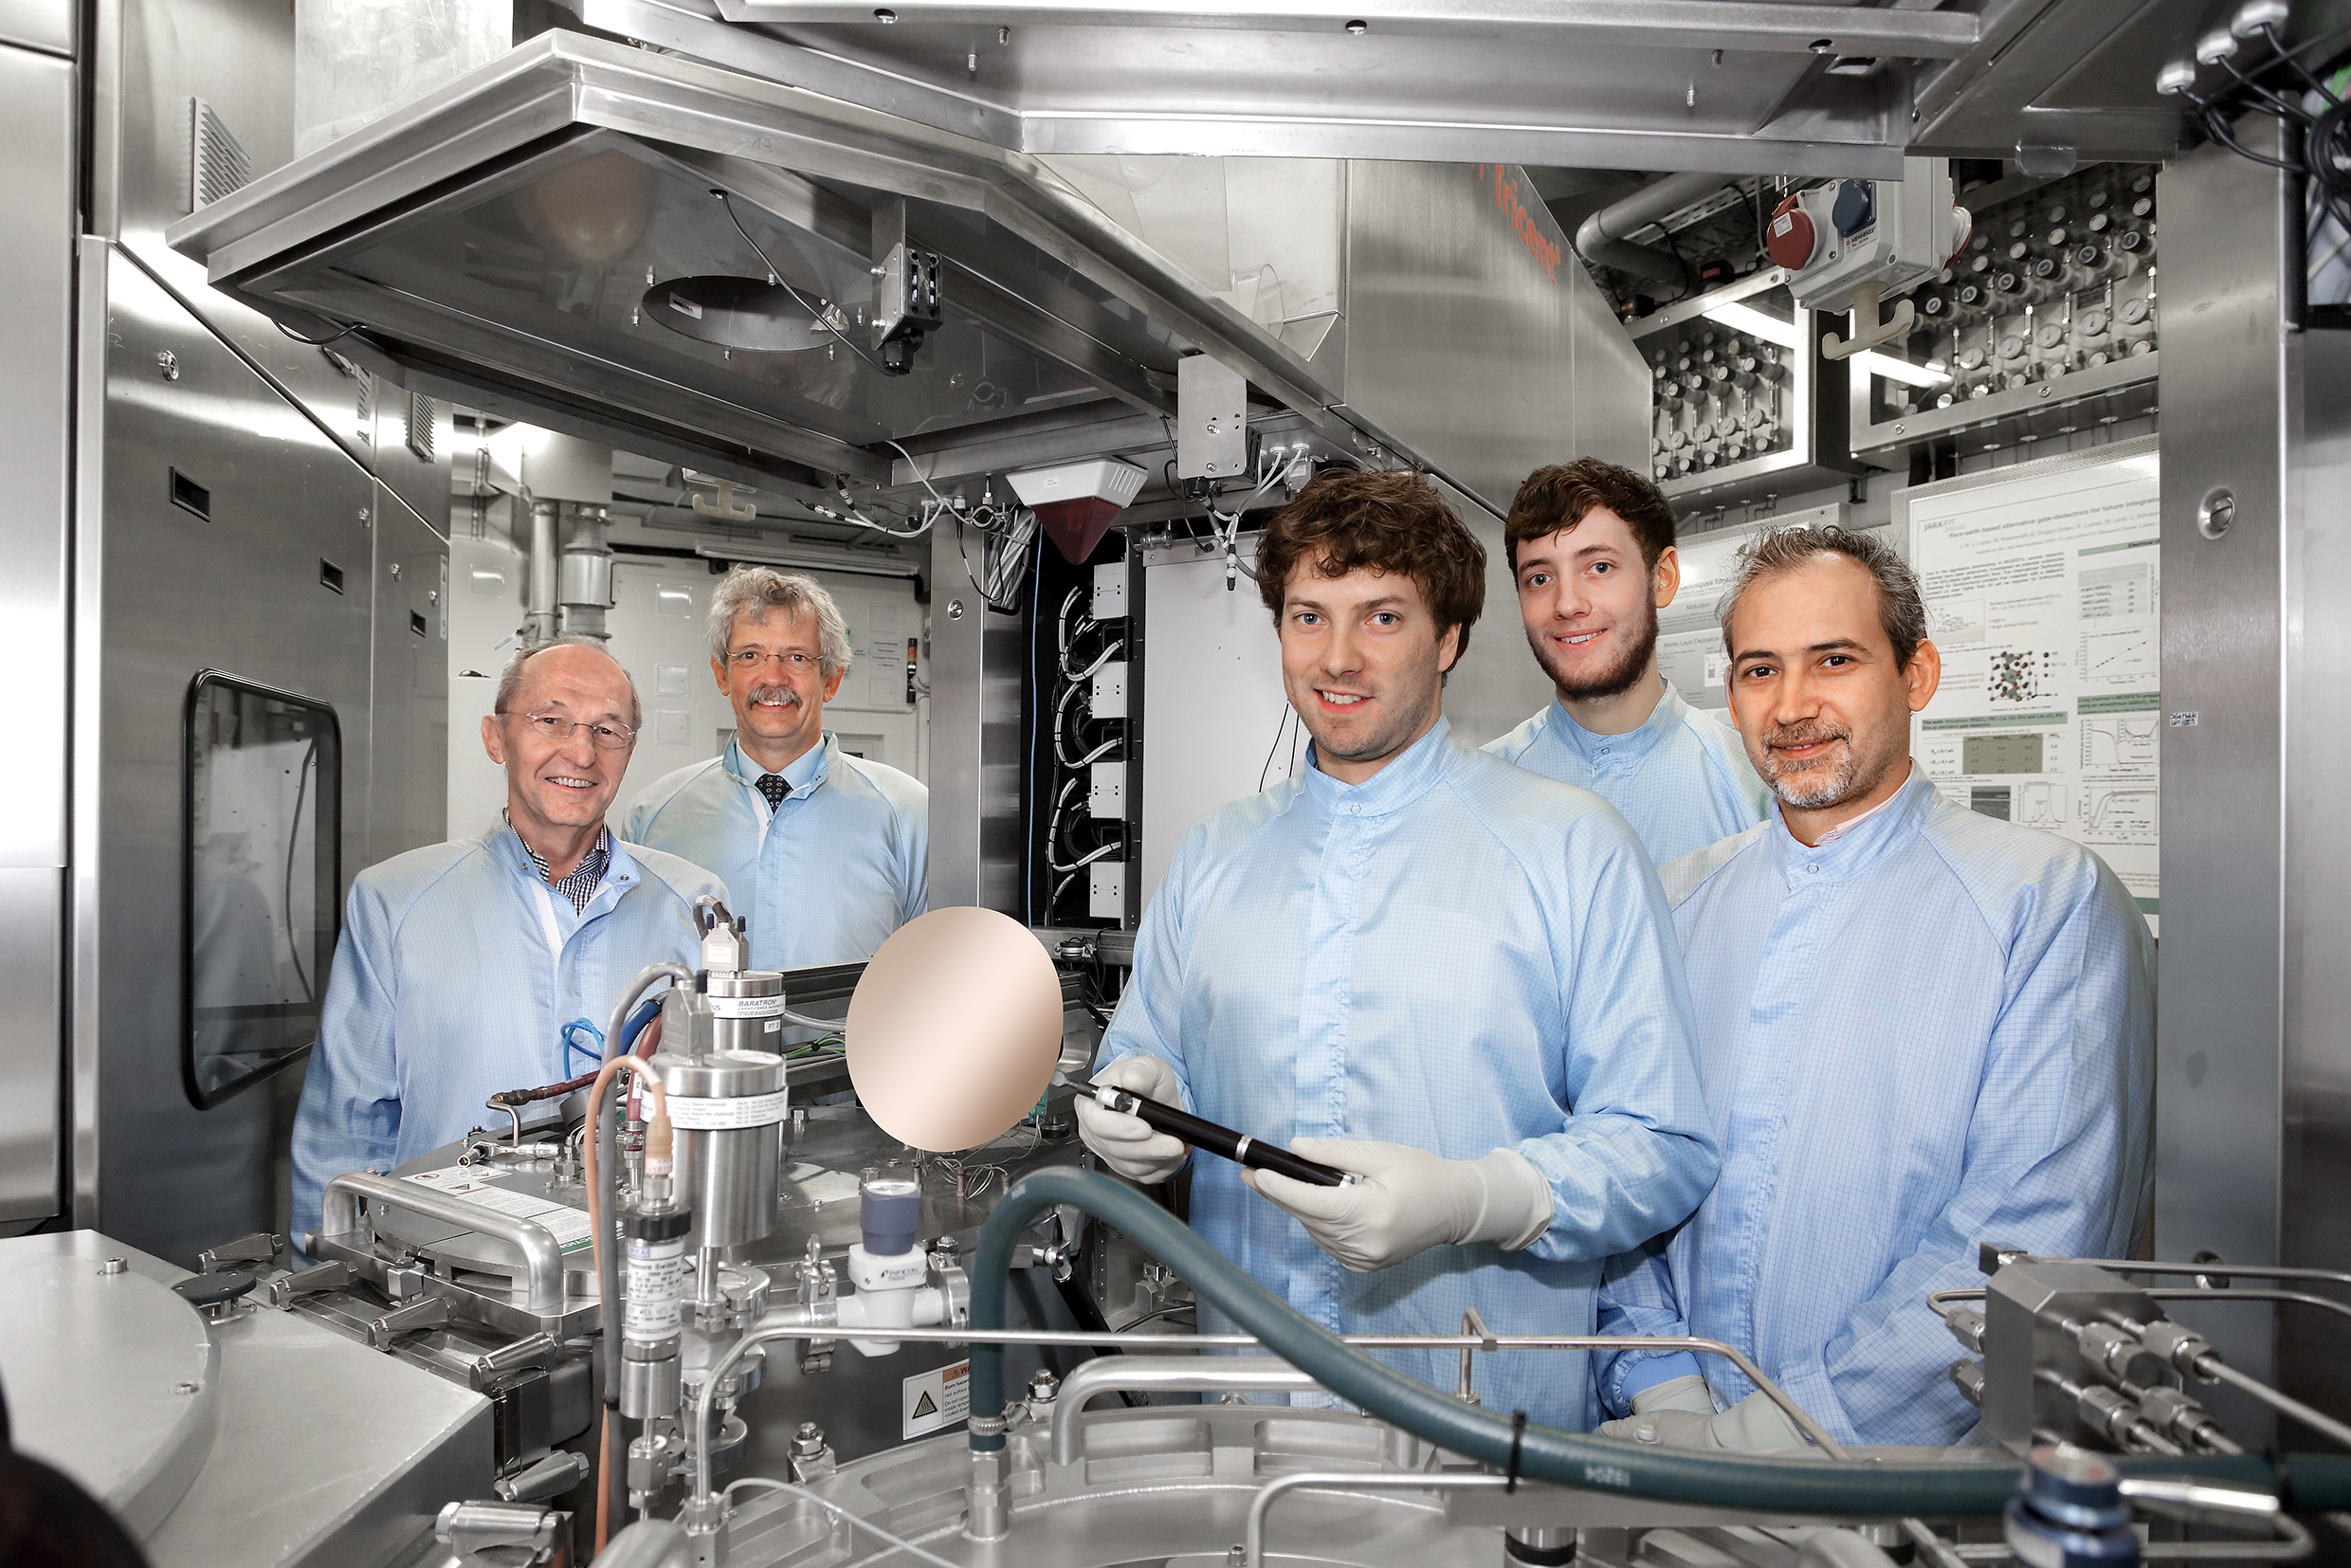 Scientists from the Peter Grünberg Institute (PGI-9) standing next to a CVD system which was used to prepare and develop parts of the new laser (from left: Prof. Siegfried Mantl, Prof. Detlev Grützmacher, Stephan Wirths, Nils von den Driesch and Dr. Dan Mihai Buca). (Copyright: Forschungszentrum Jülich)